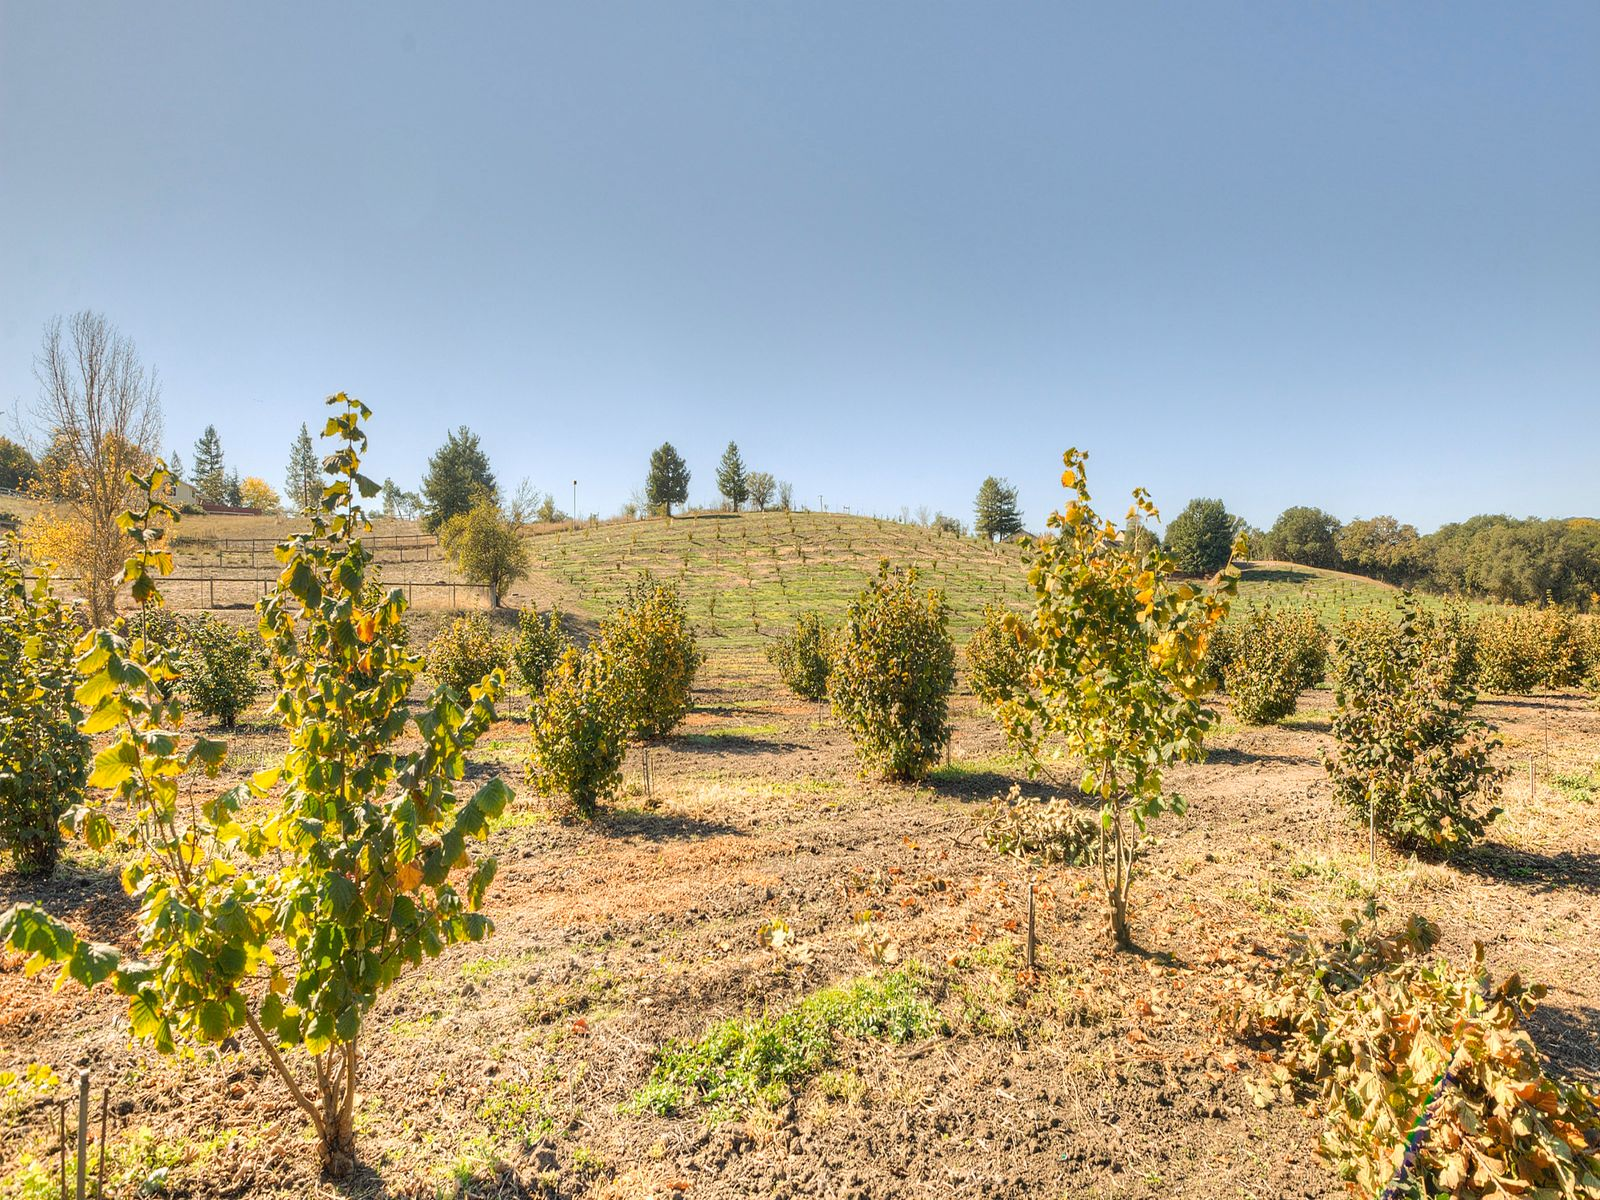 Creekside Setting